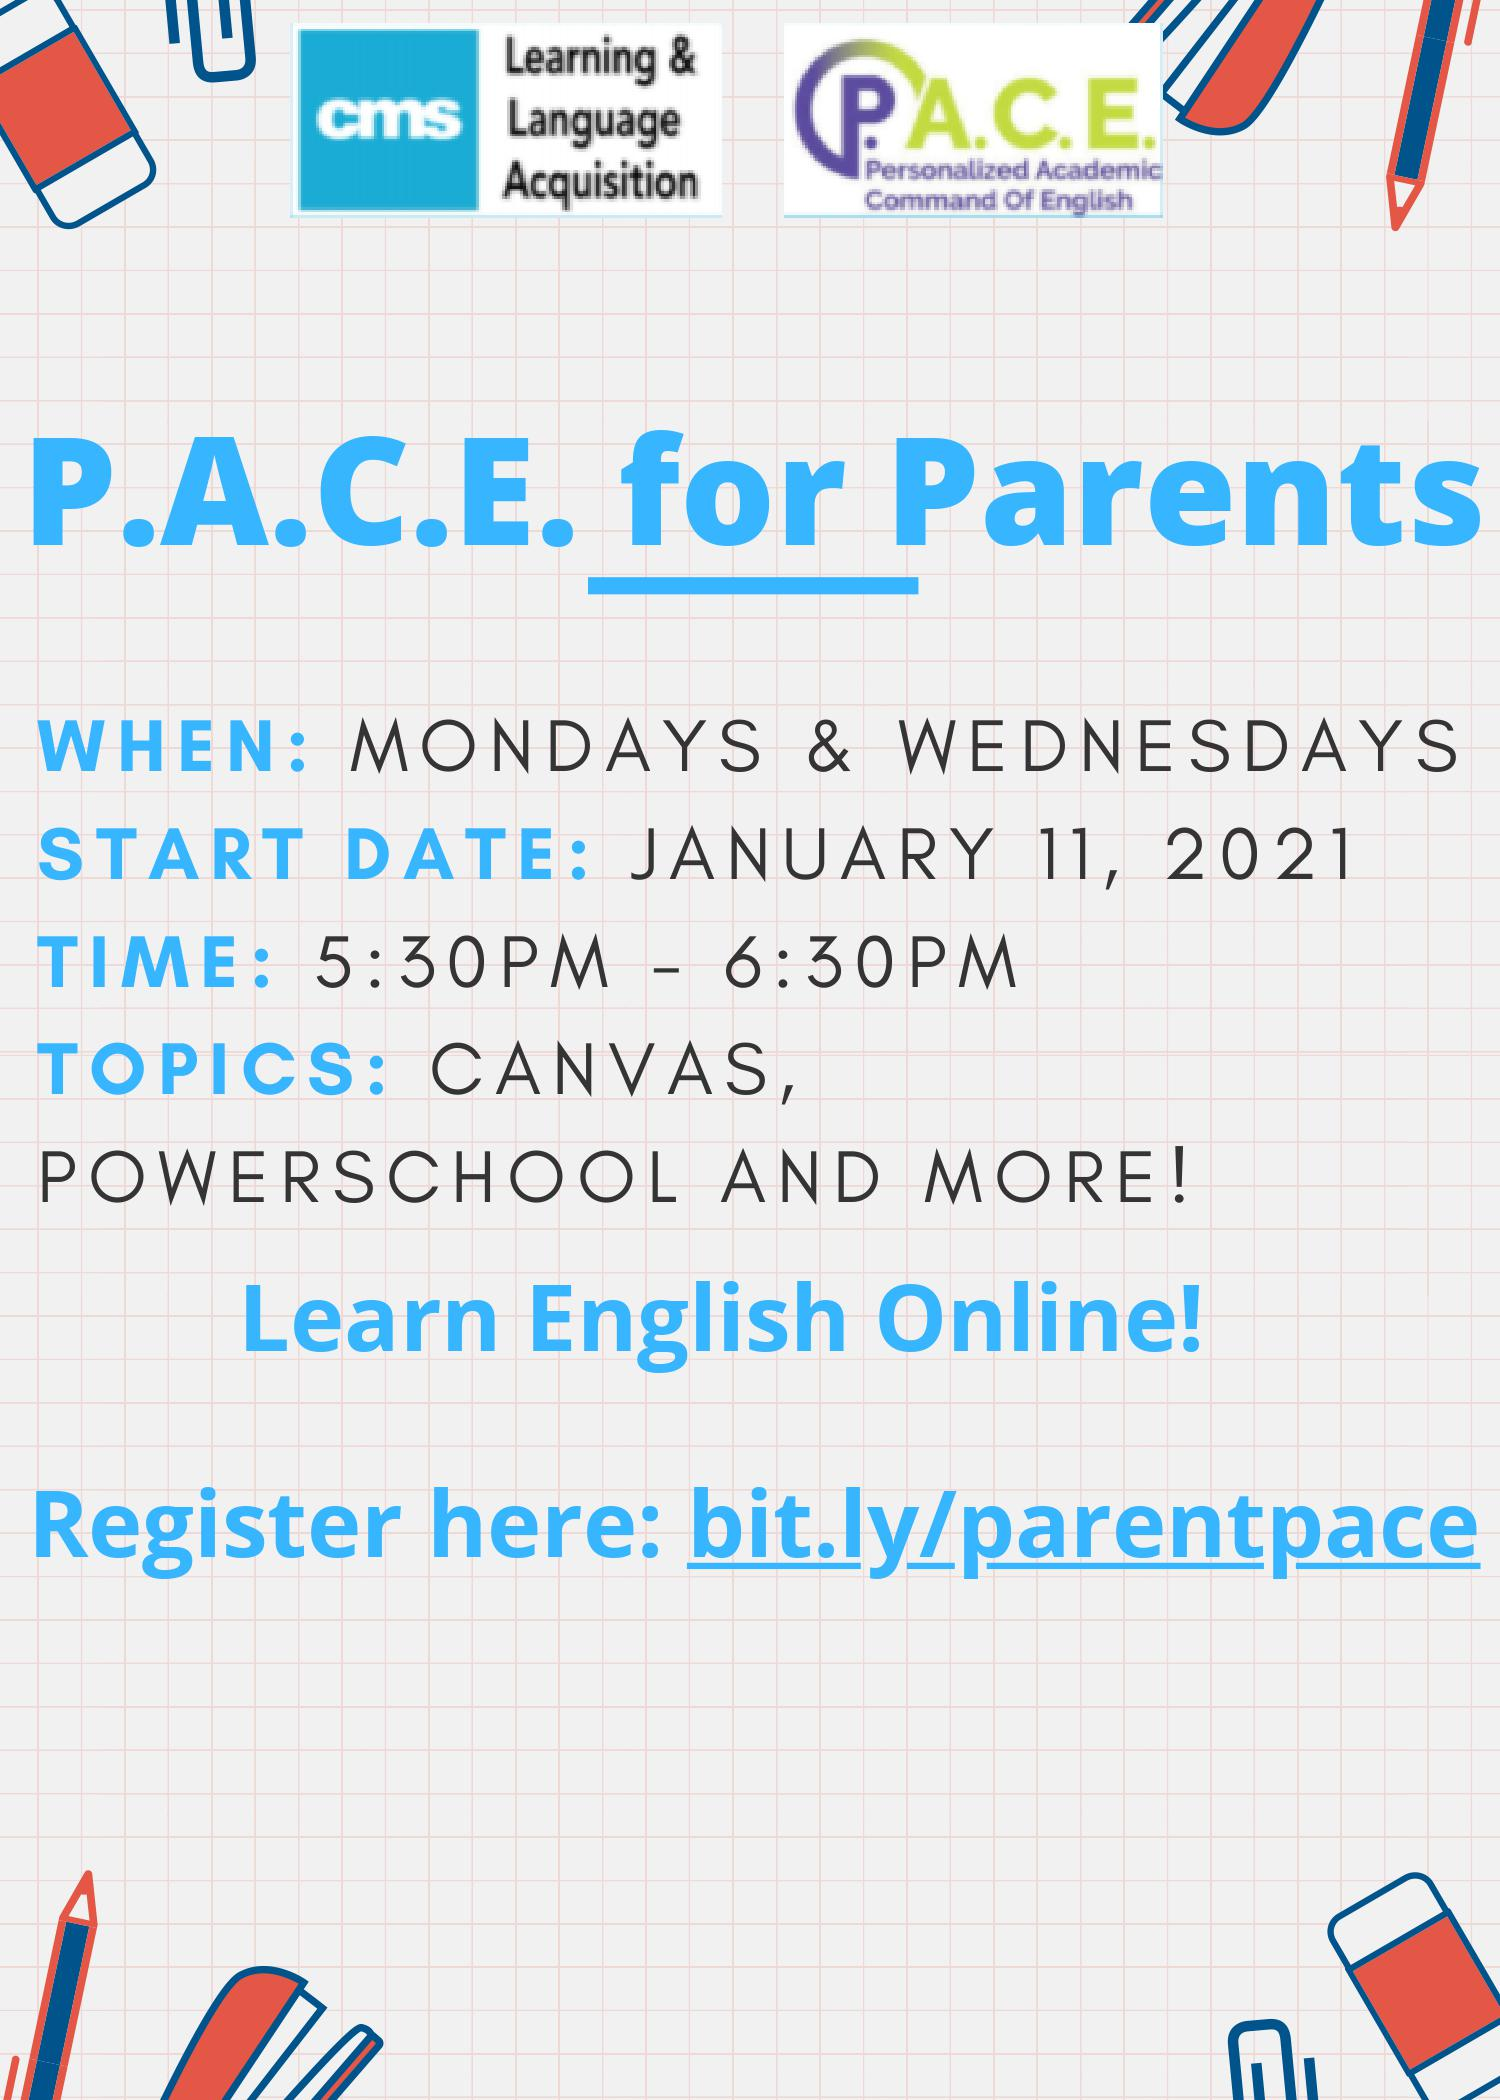 PACE for Parents flyer (English) (1)-jpg.jpg